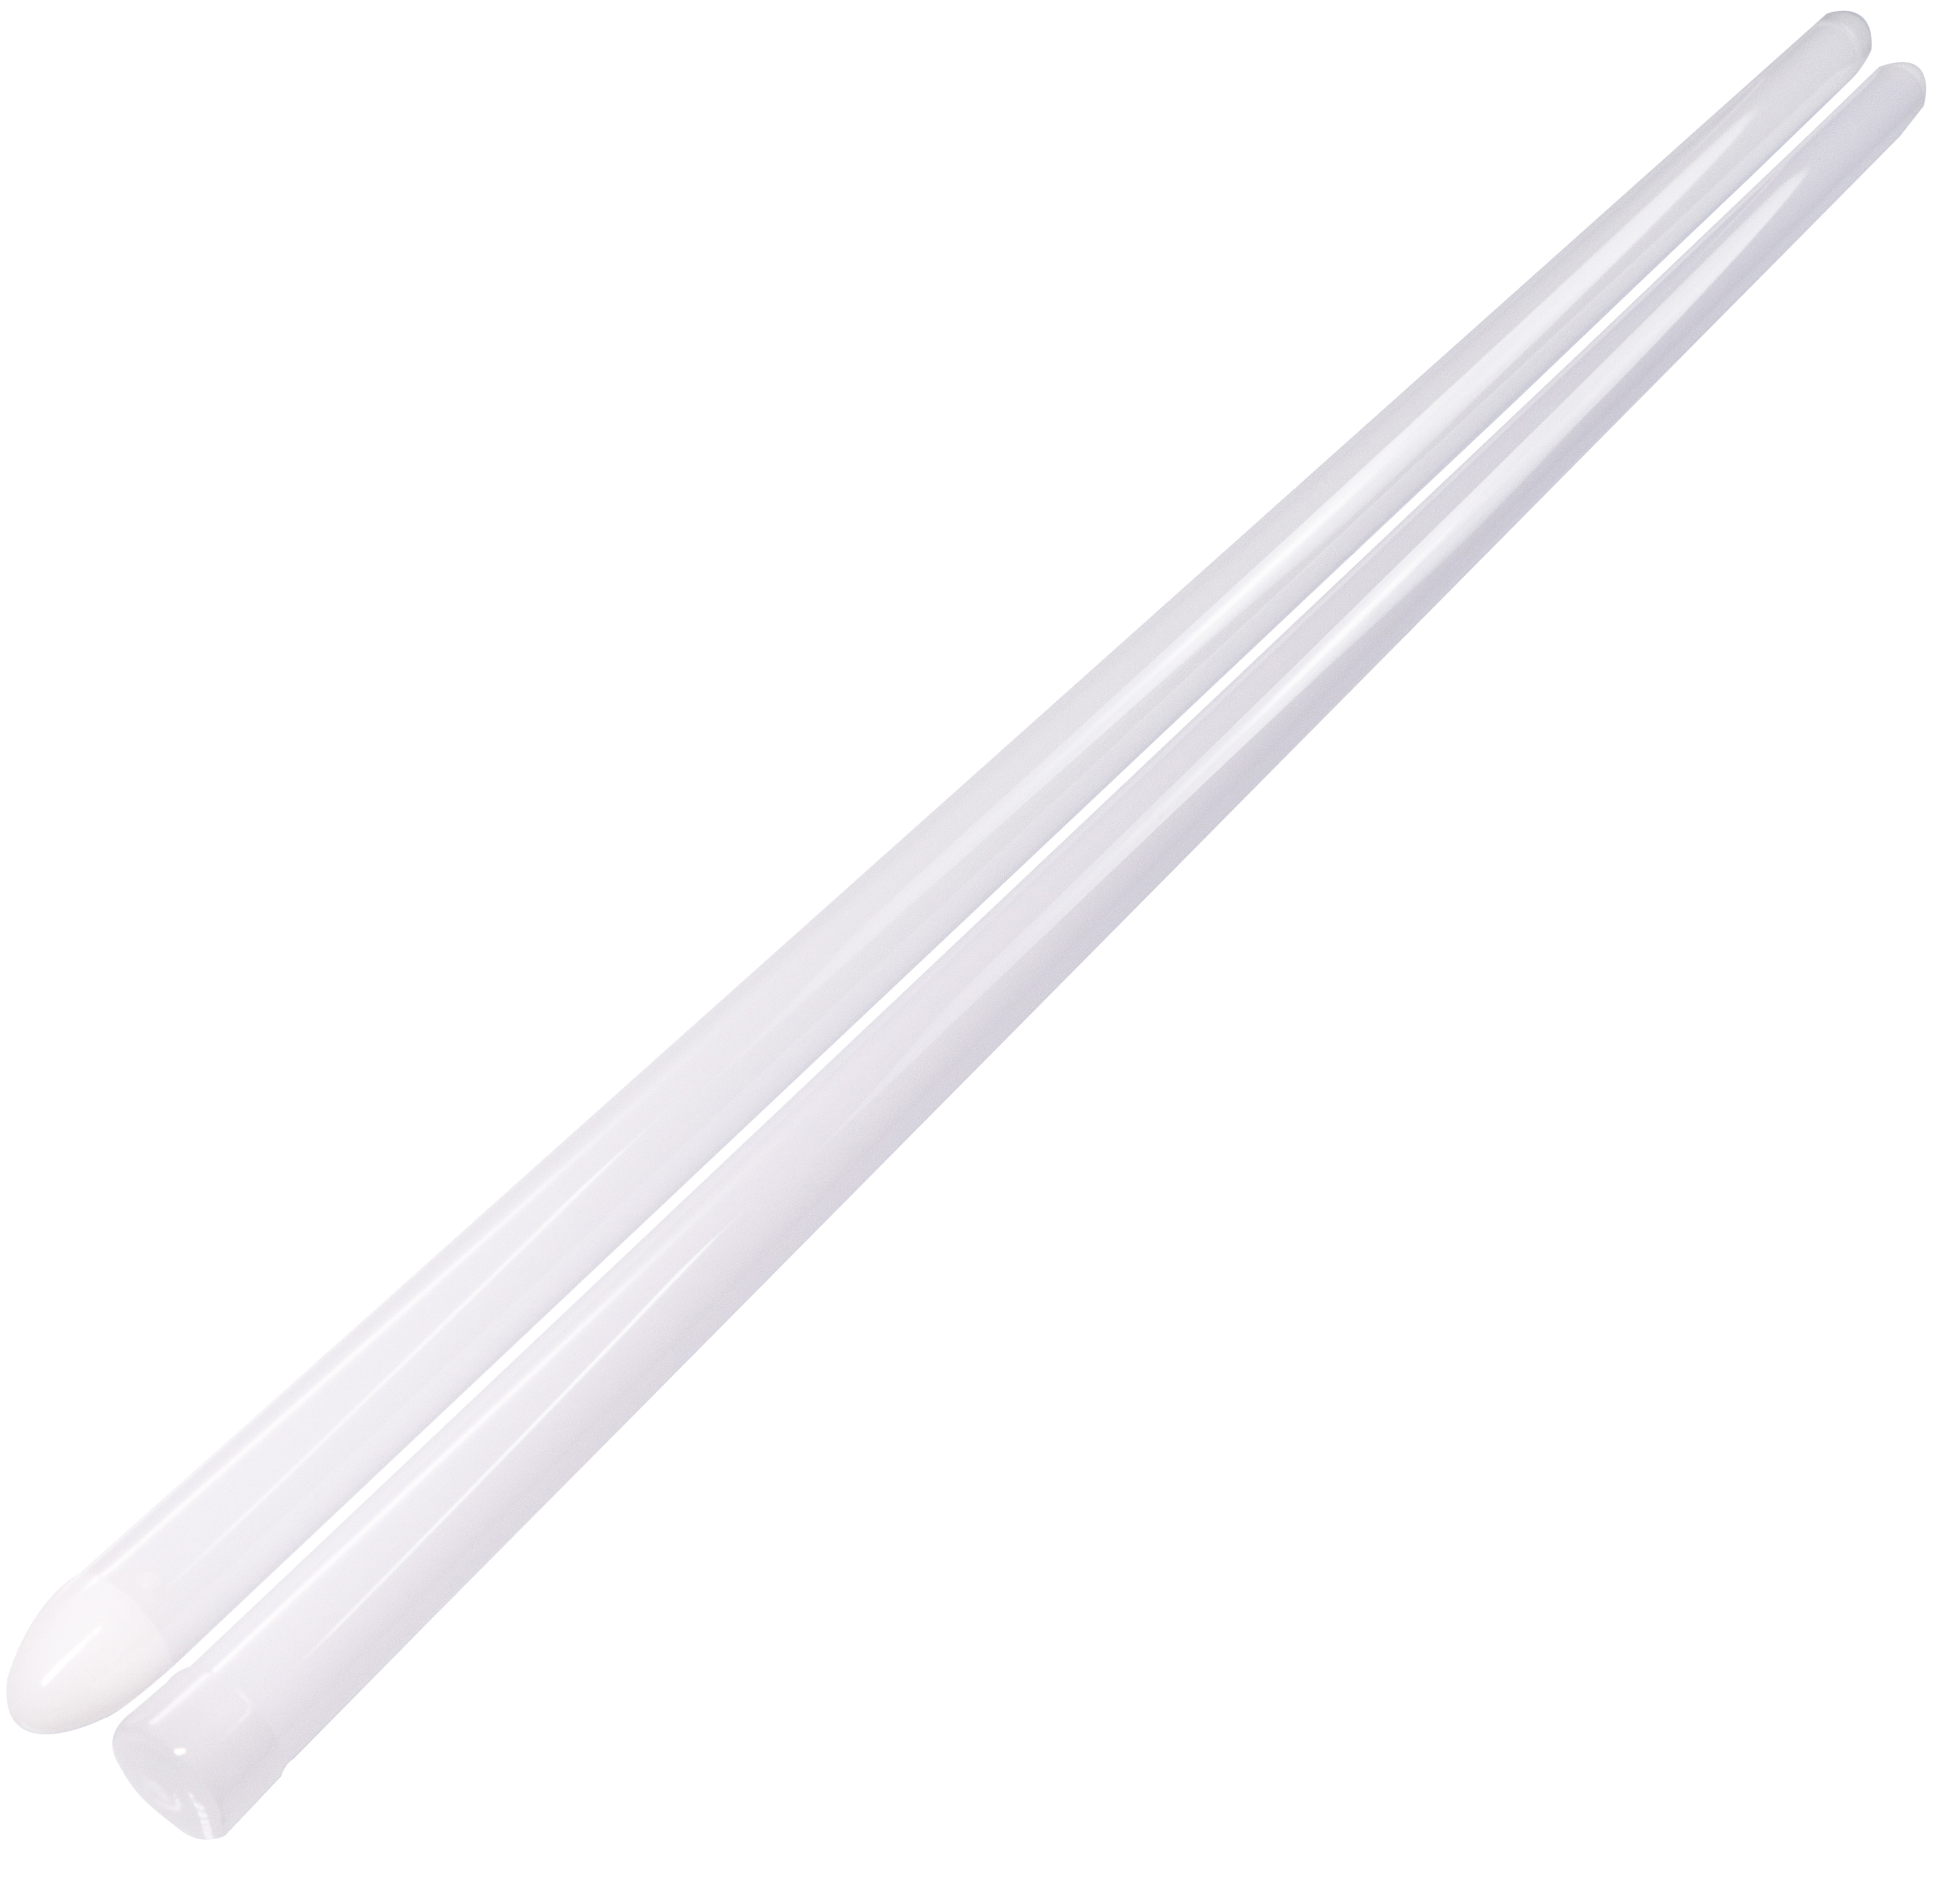 LGT SABERSTUDIO lightsaber blade for 2mm thickness 7/8inch OD 92 82 72 62 52 42cm round or bullet tip blade with film mirror